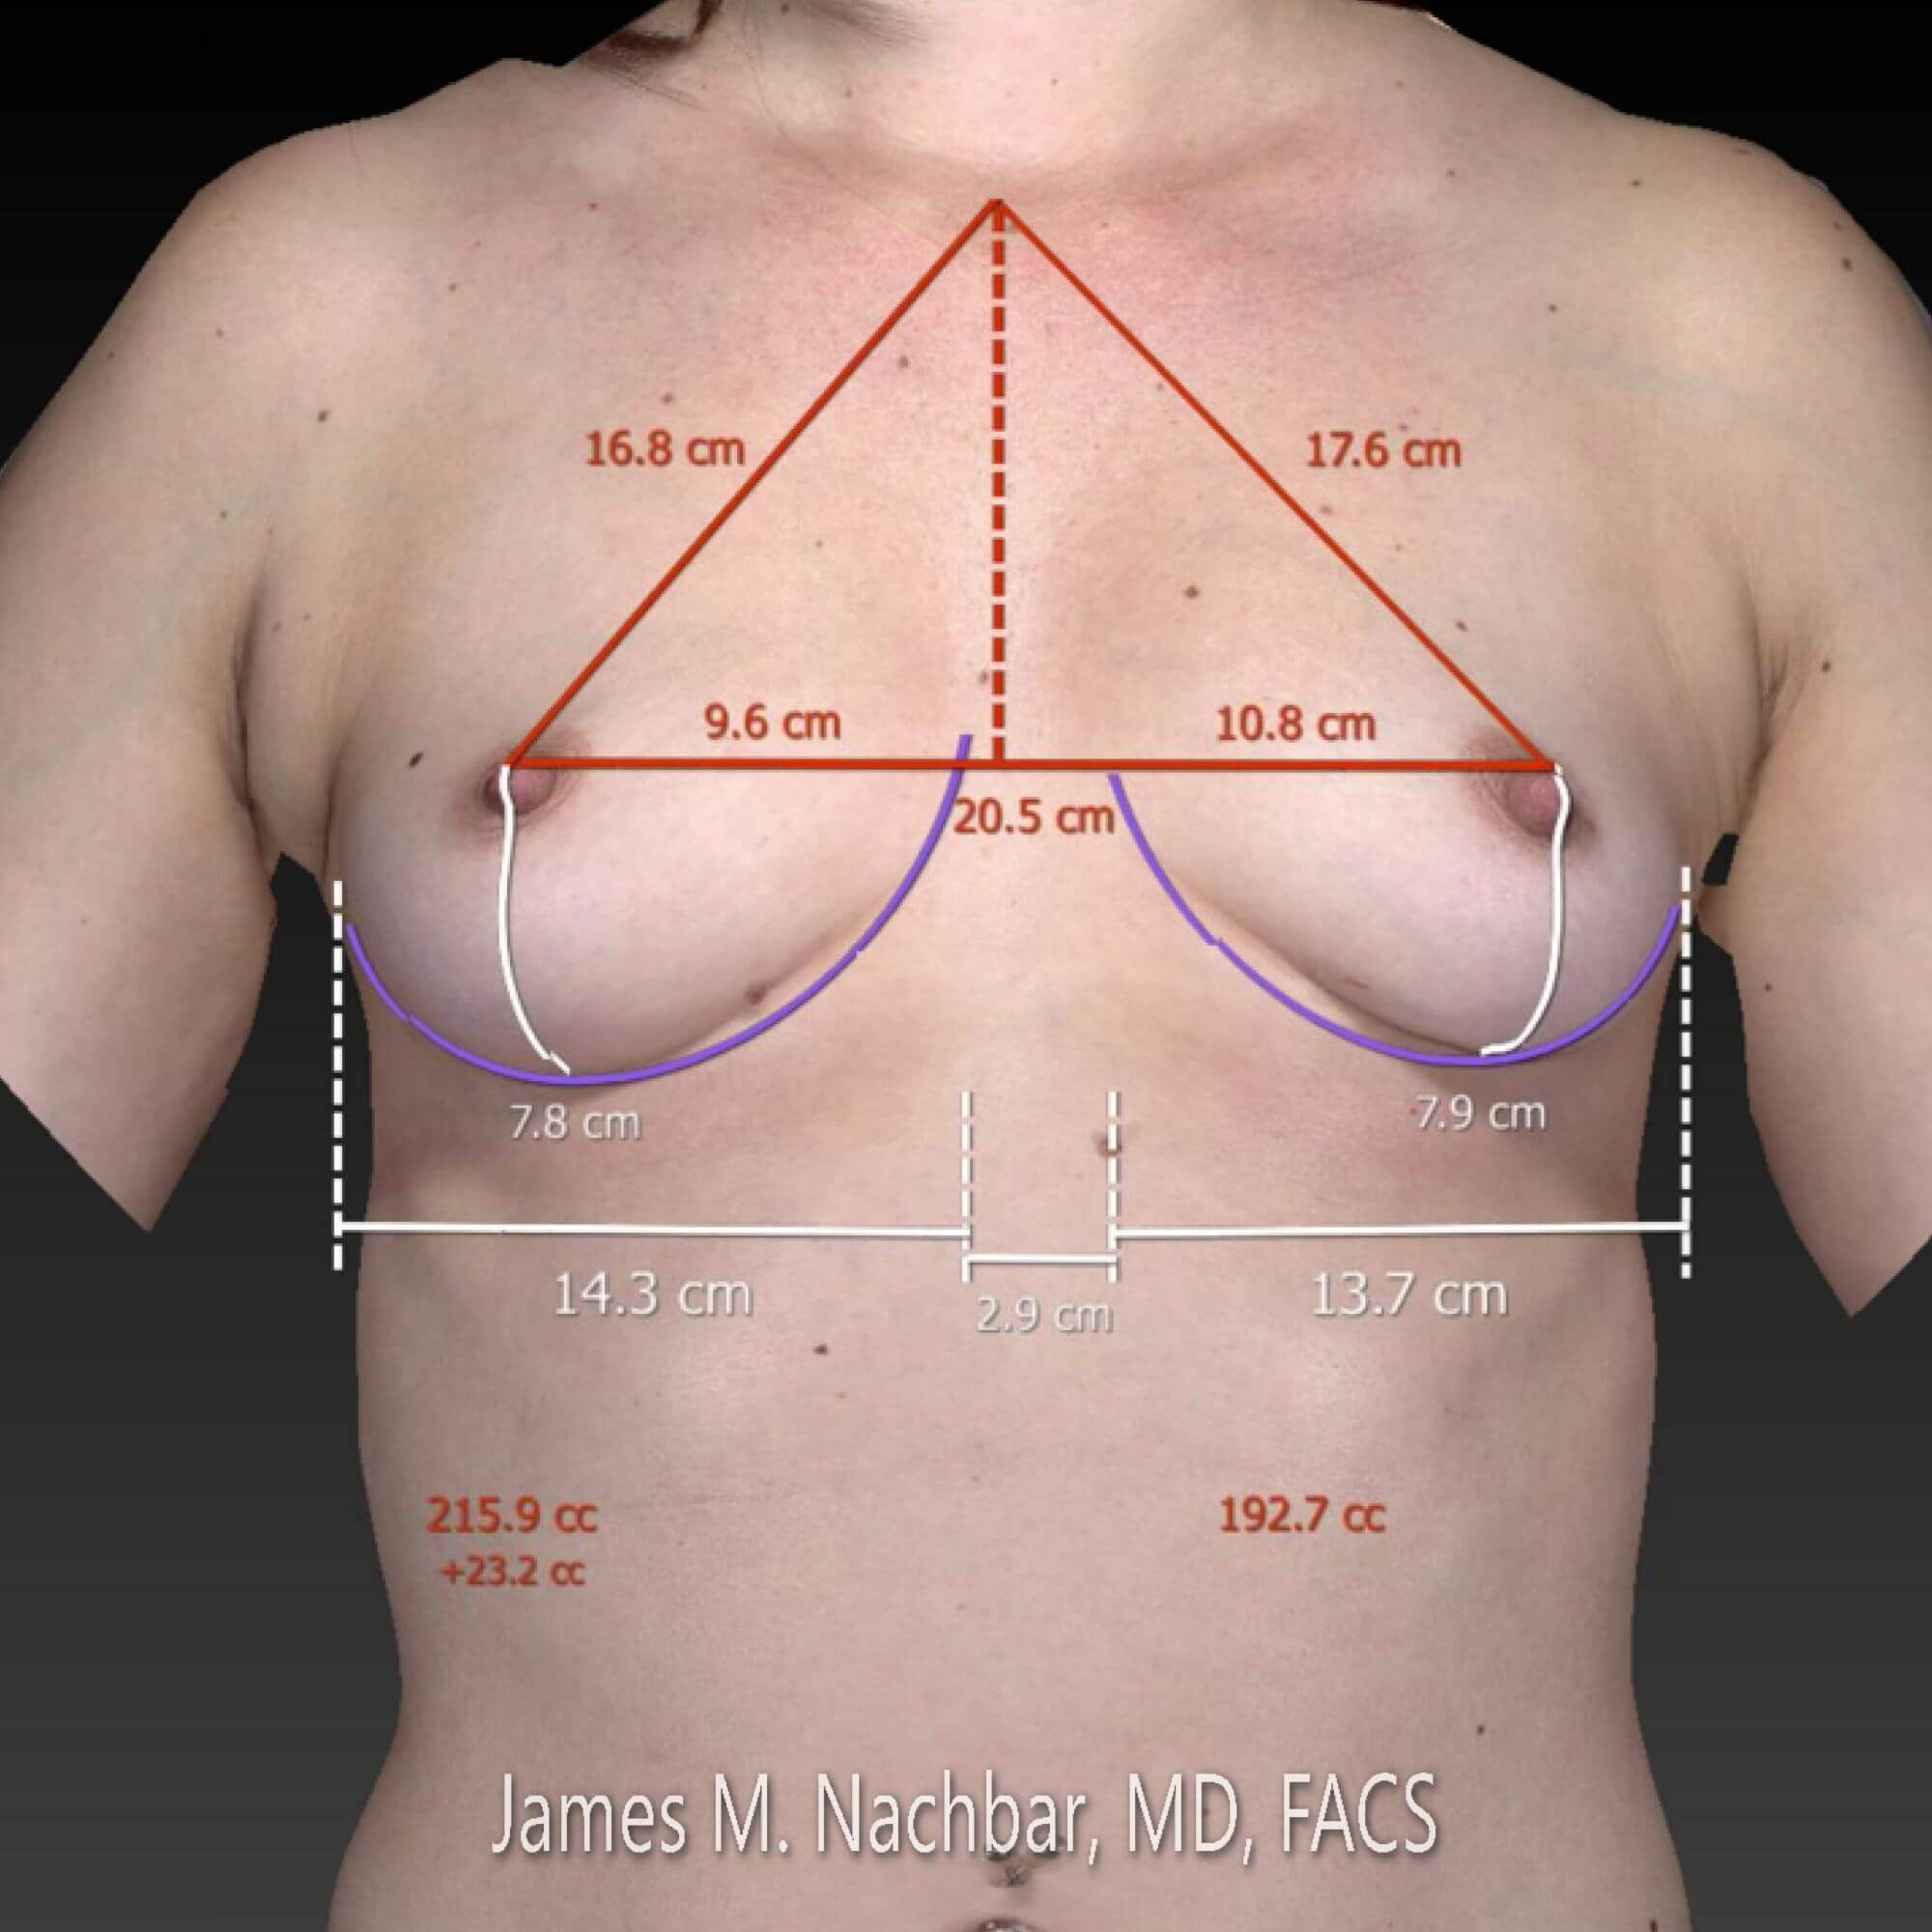 3-D Breast Measurements Front 3-D View